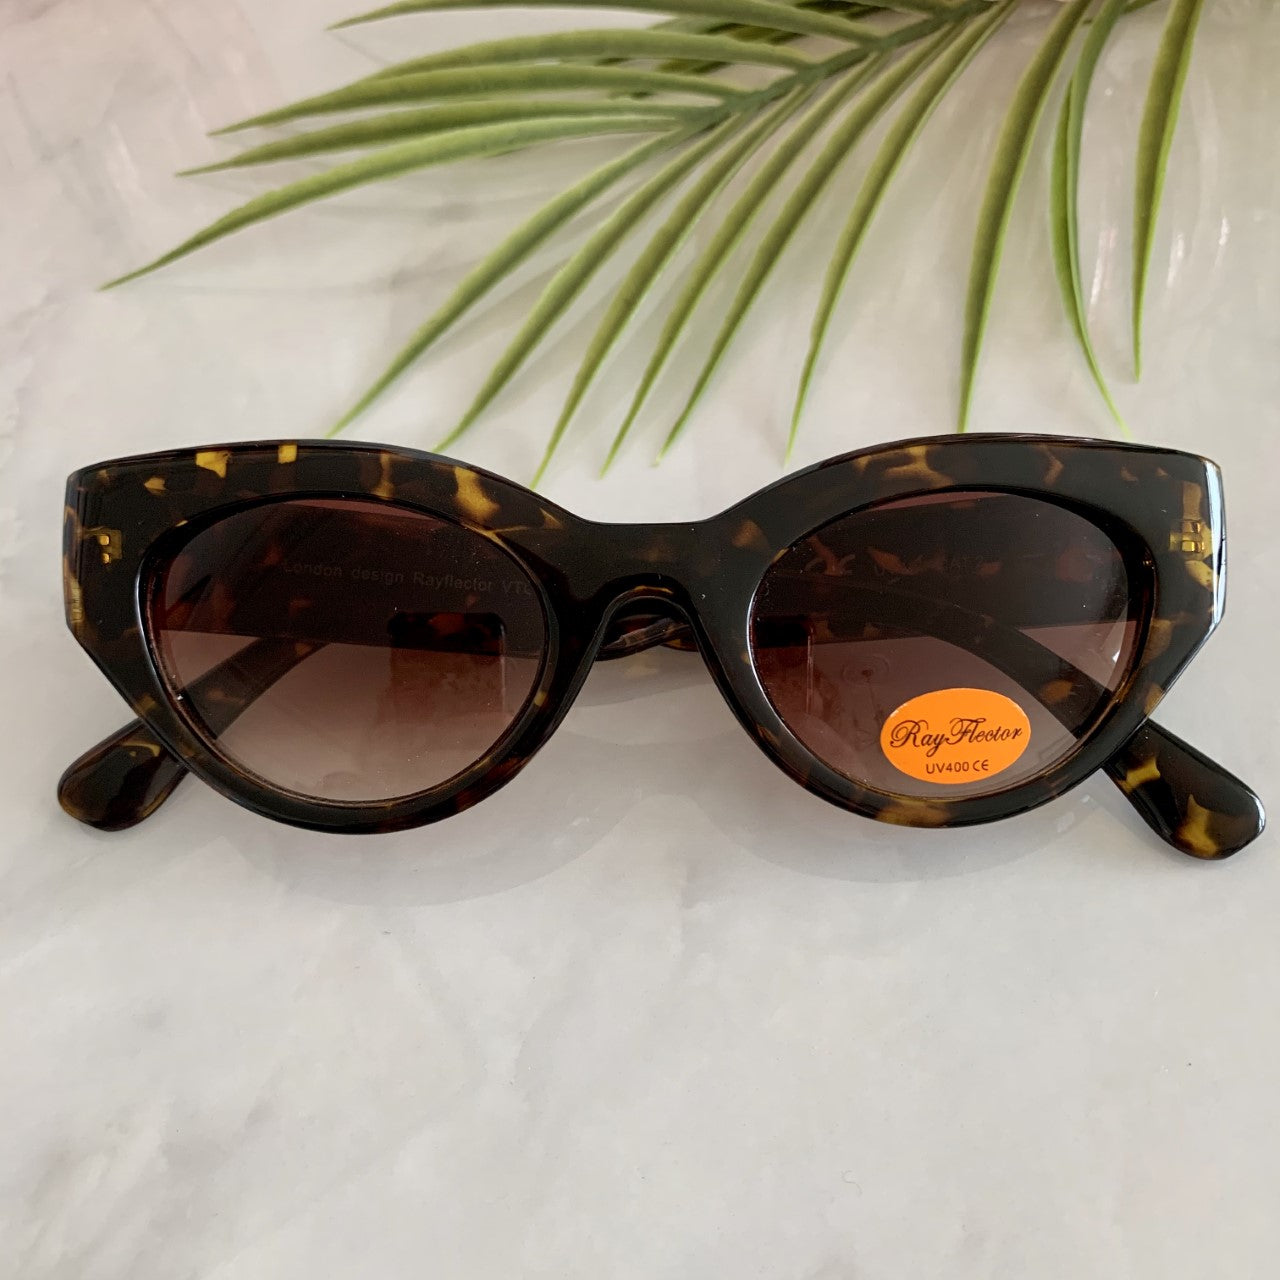 1950s Style Cat Eye Sunglasses | Tortoiseshell